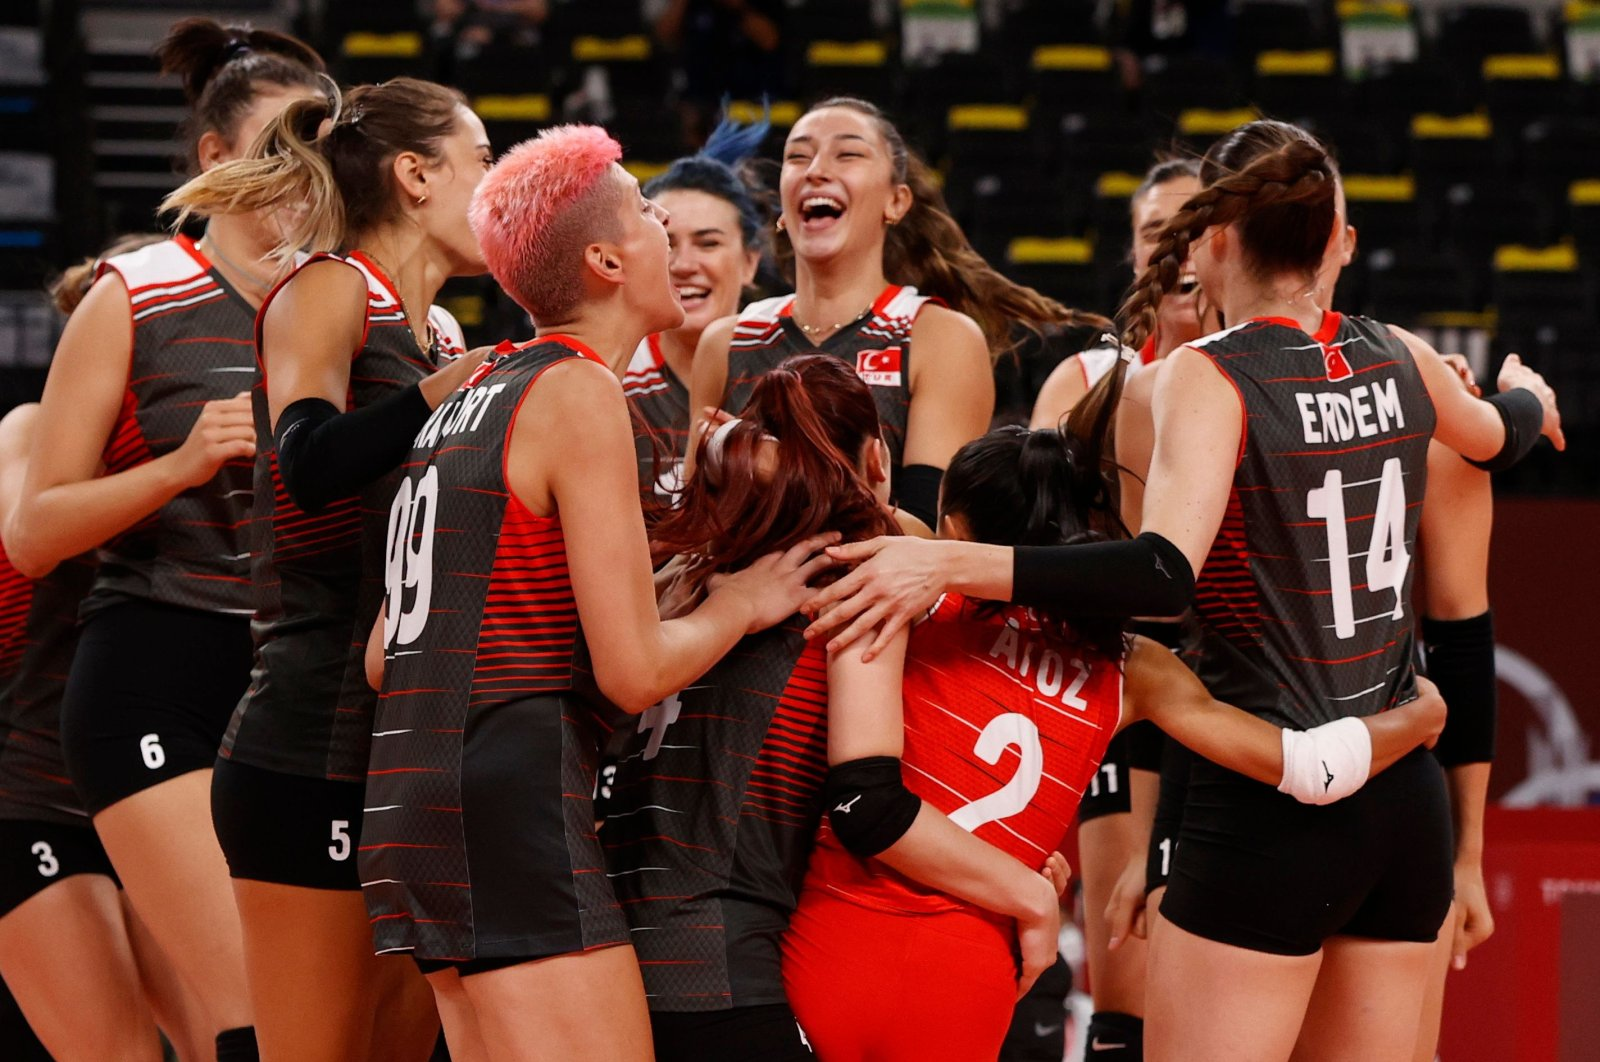 Turkish volleyball players celebrate after winning their Pool B match against theRussian Olympic Committee (ROC)Ariake Arena, Tokyo, Japan, Aug. 2, 2021. (Reuters Photo)